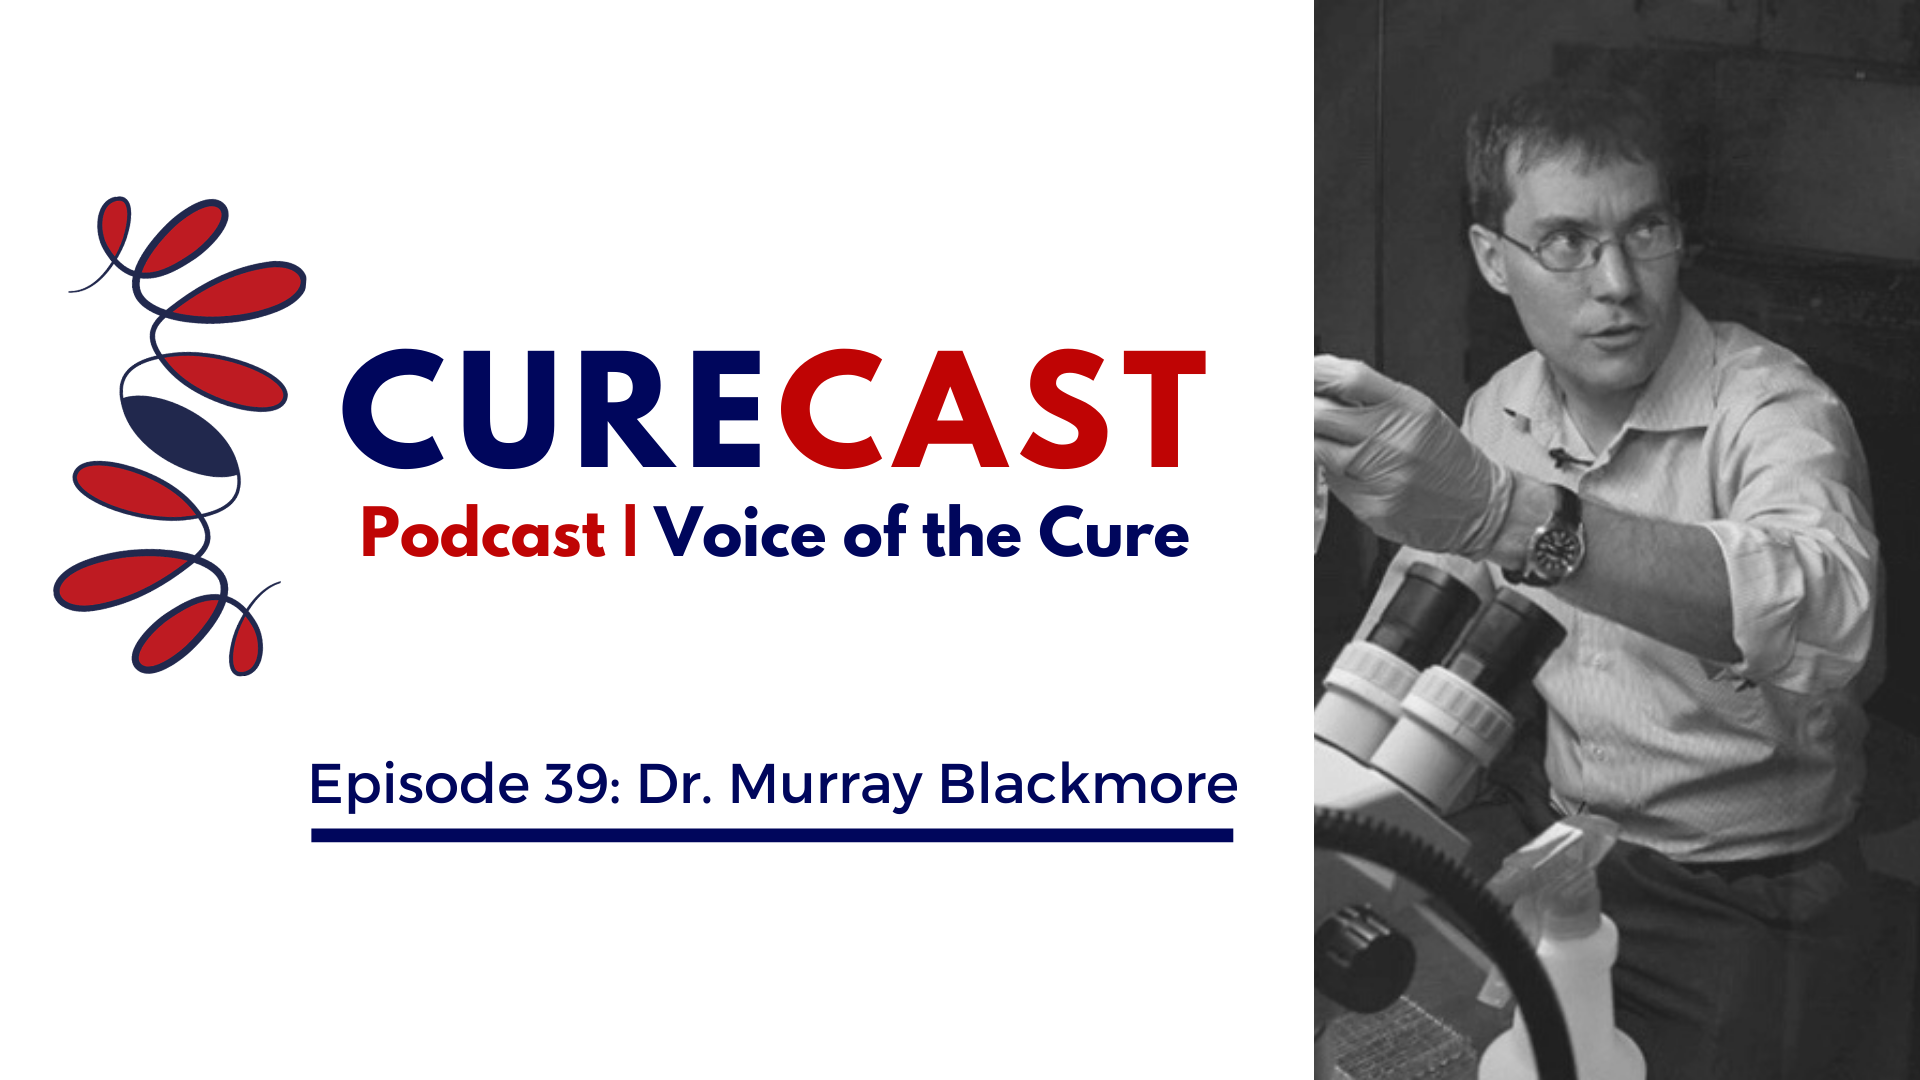 CureCast Episode 39: Dr. Murray Blackmore